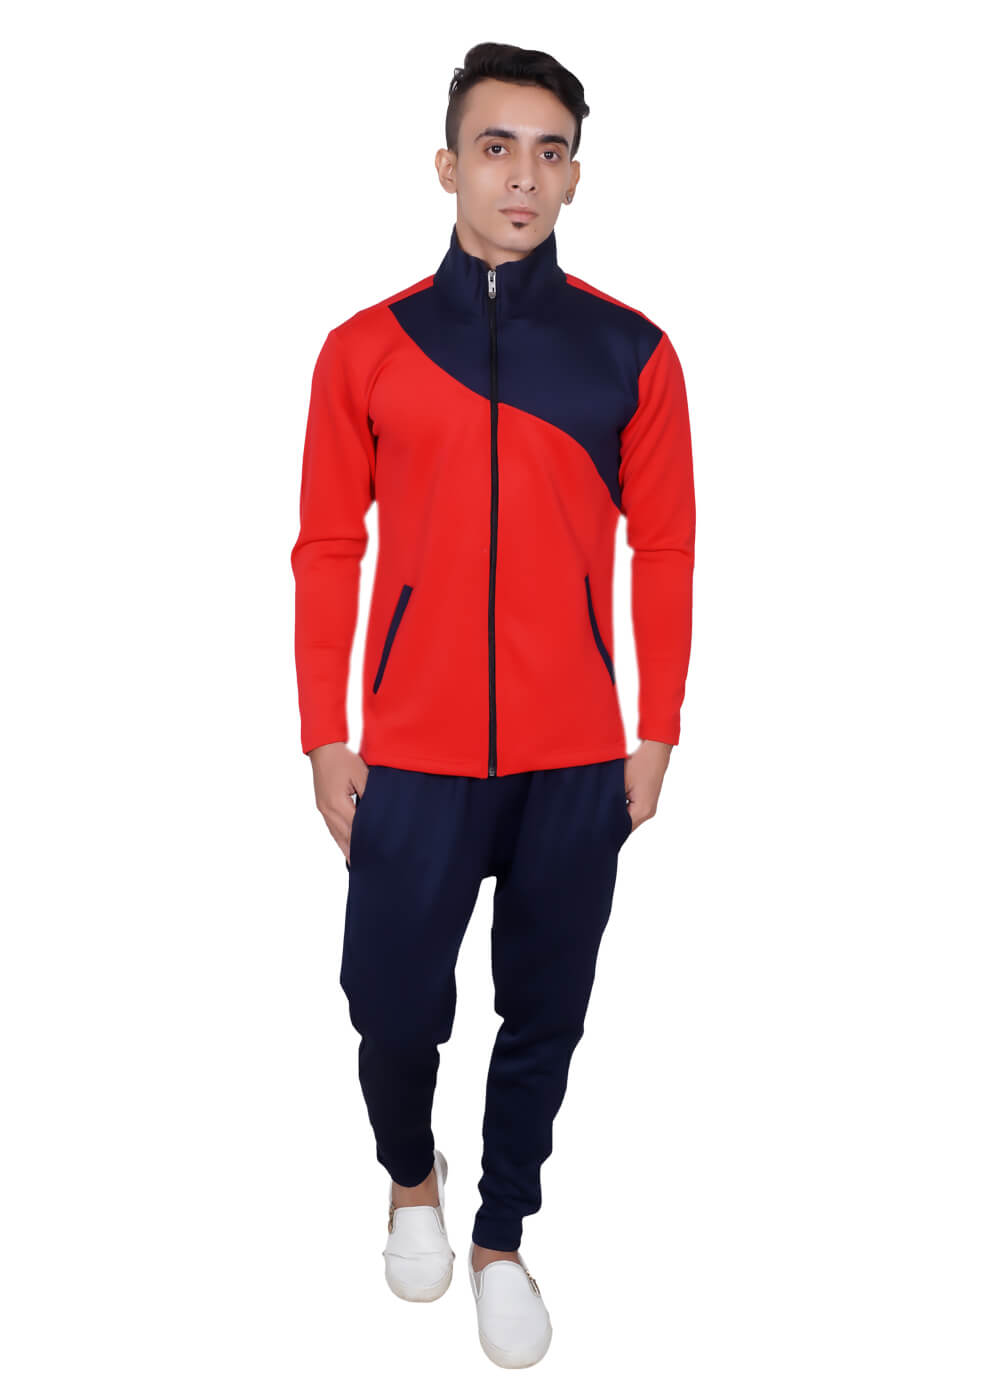 Cheap Tracksuits Manufacturers in Bolivia